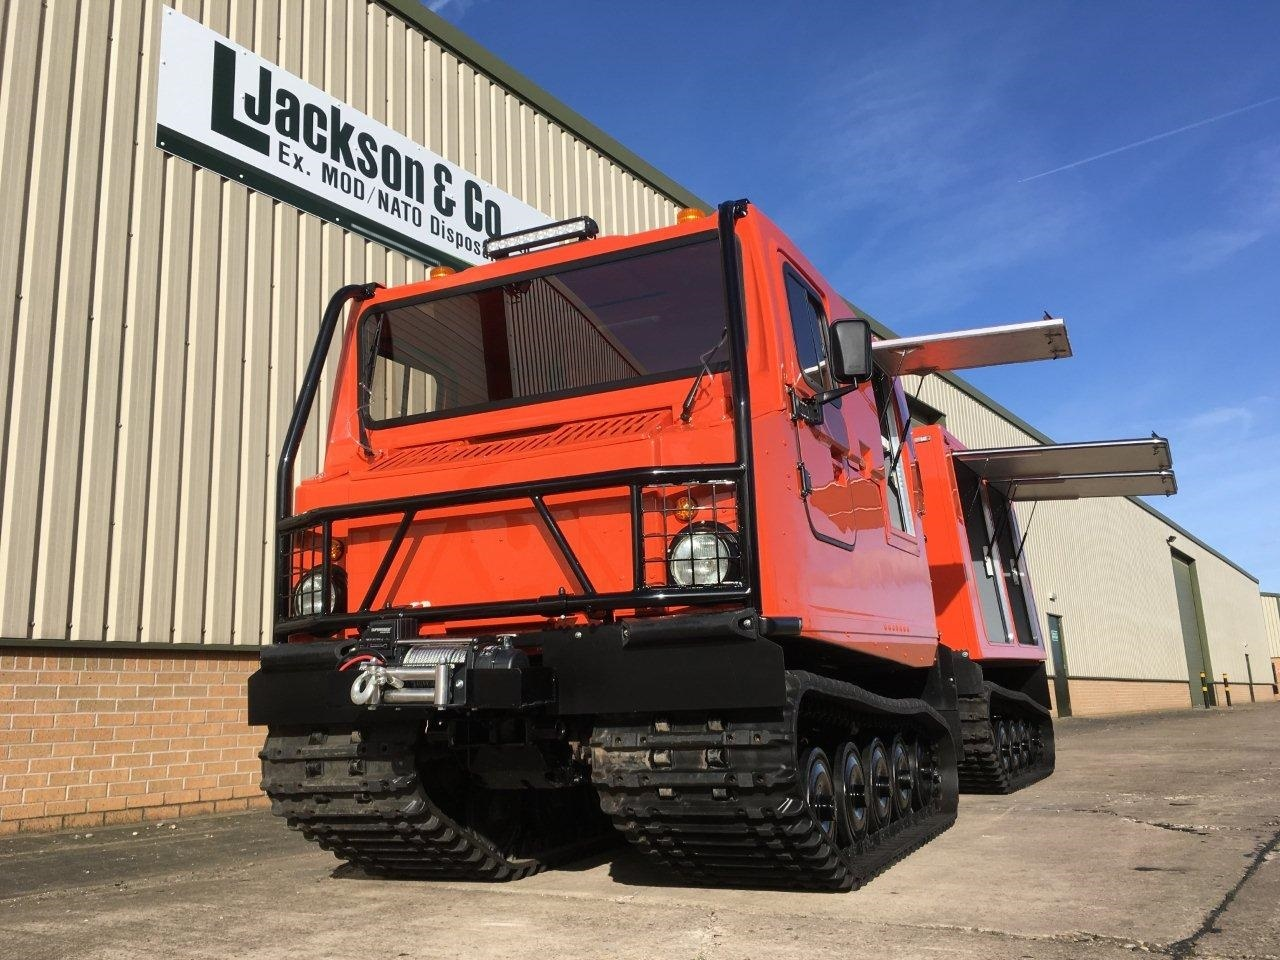 Hagglund BV206 Multi-Purpose Vehicle | Military Land Rovers 90, 110,130, Range Rovers, Mercedes for Sale